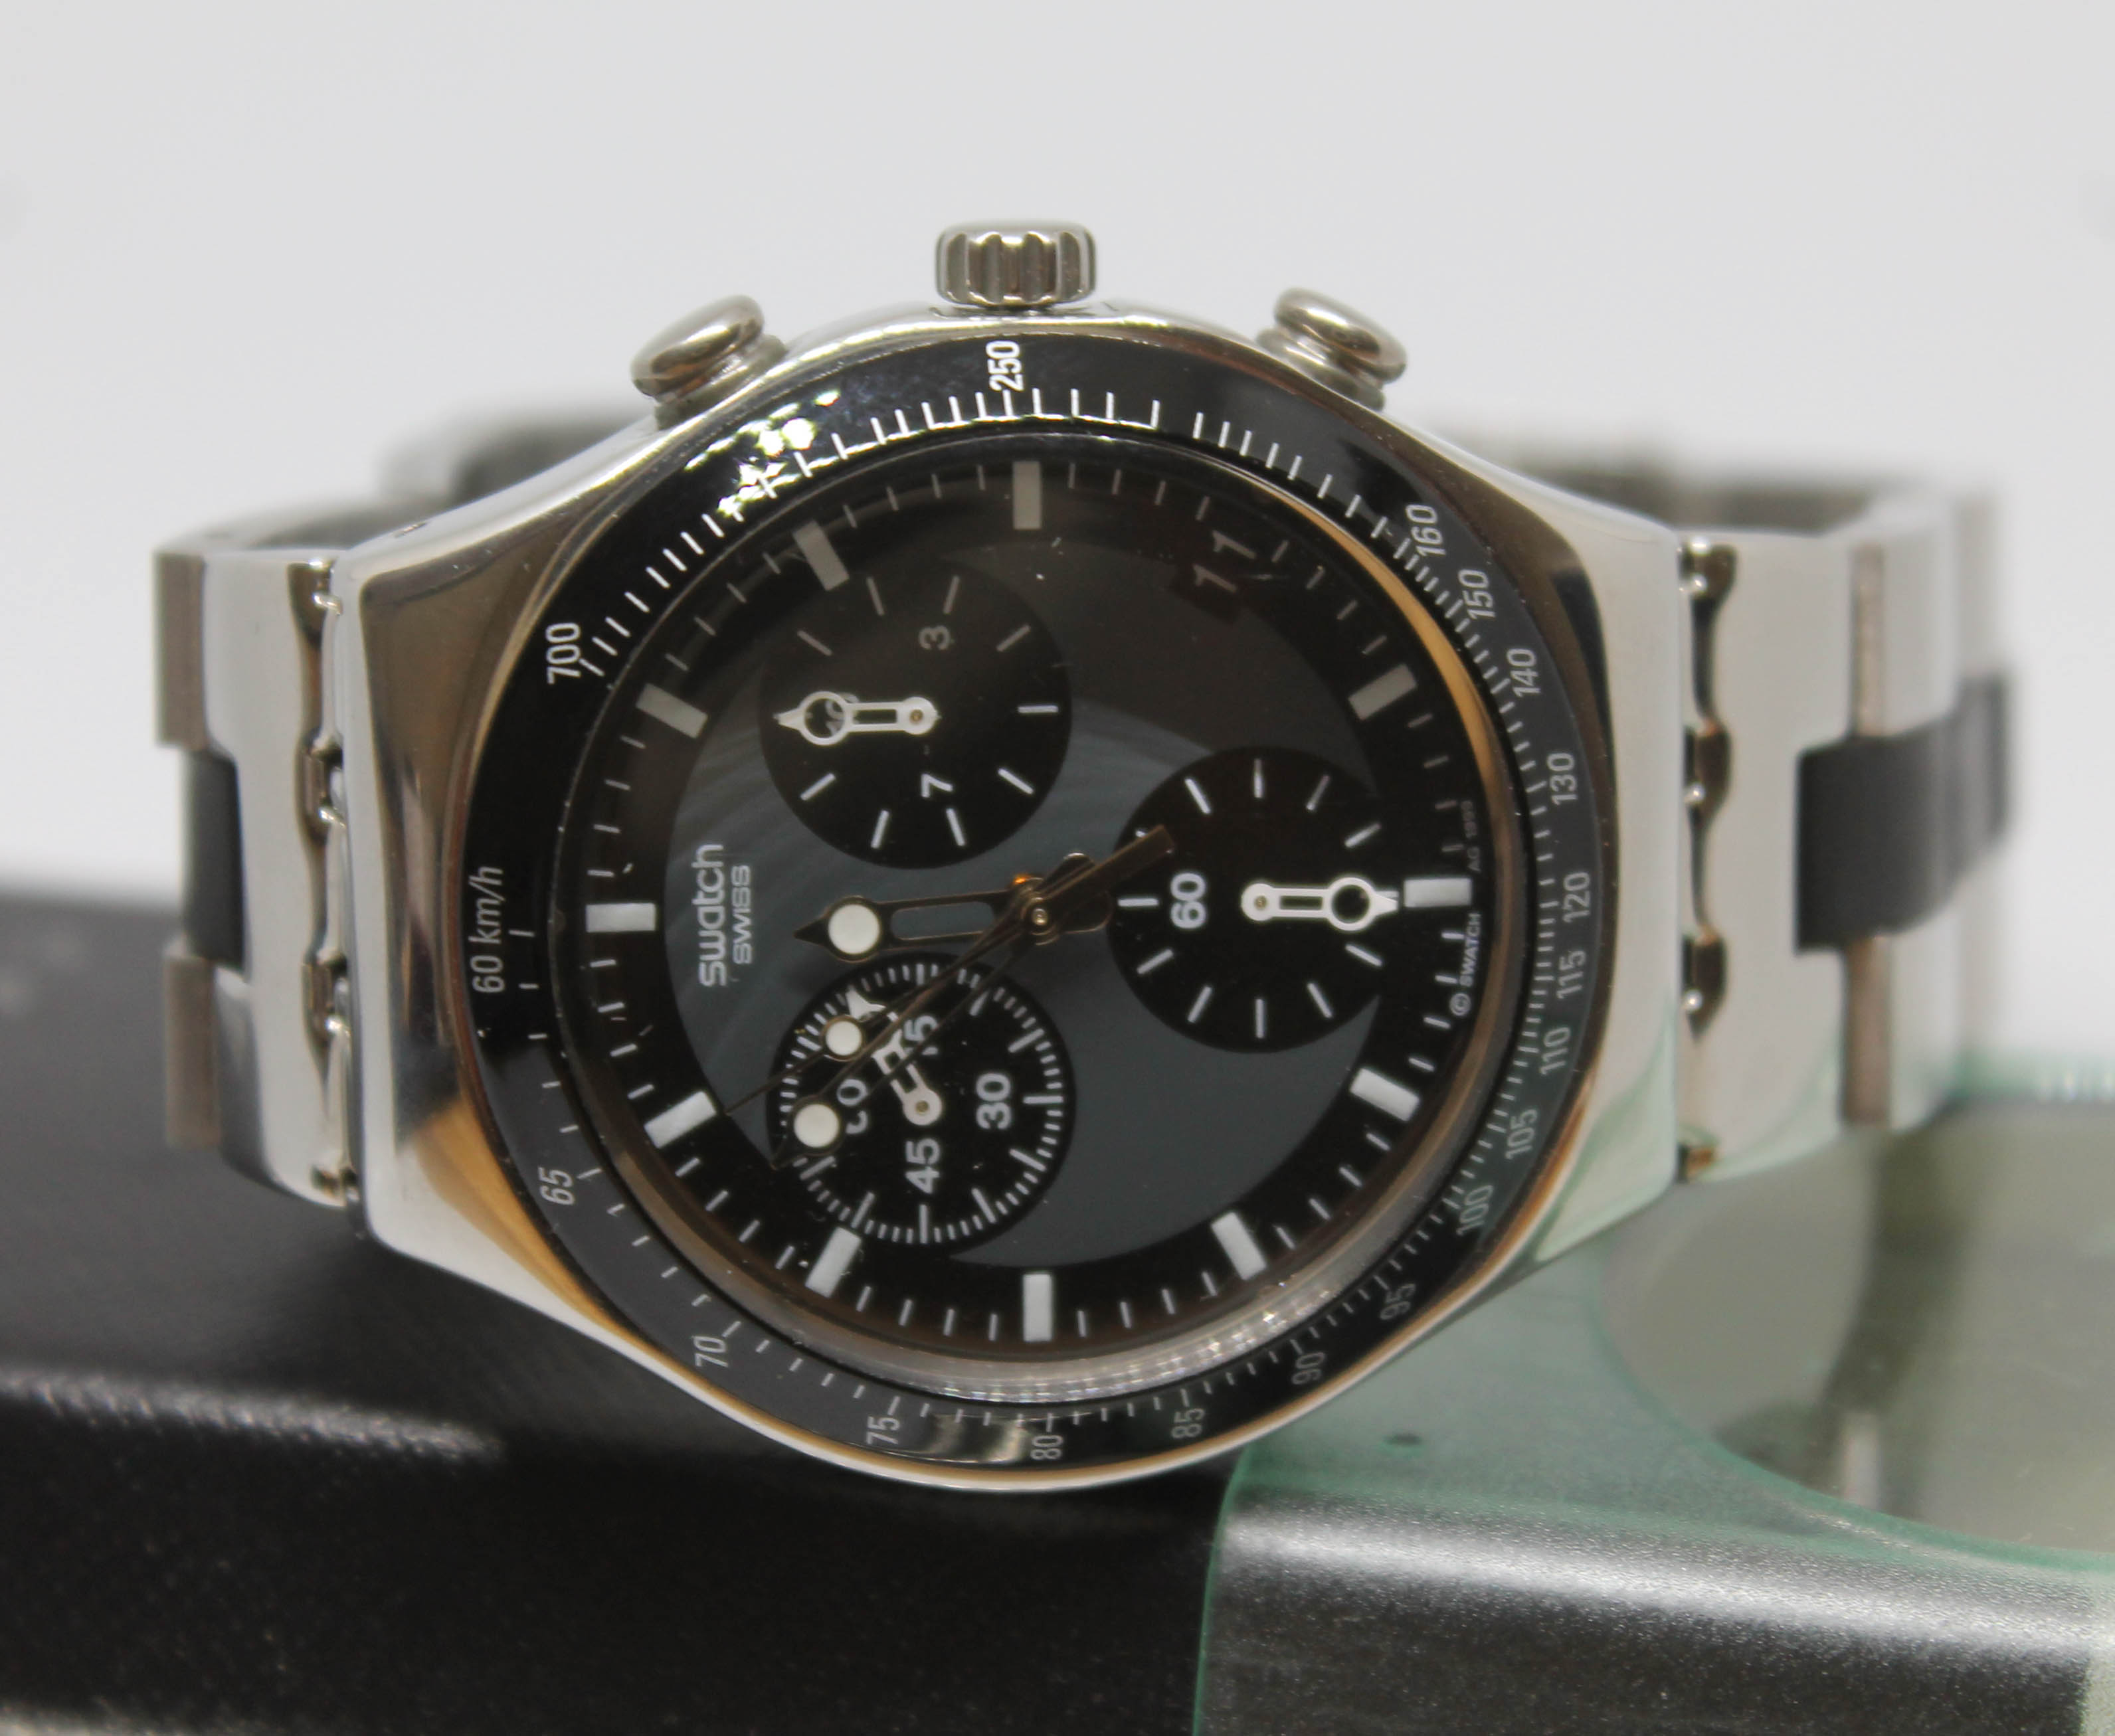 Lot 213 - A Swatch Irony Chrono stainless steel Quartz Chronograph wristwatch, with black/grey signed dial,